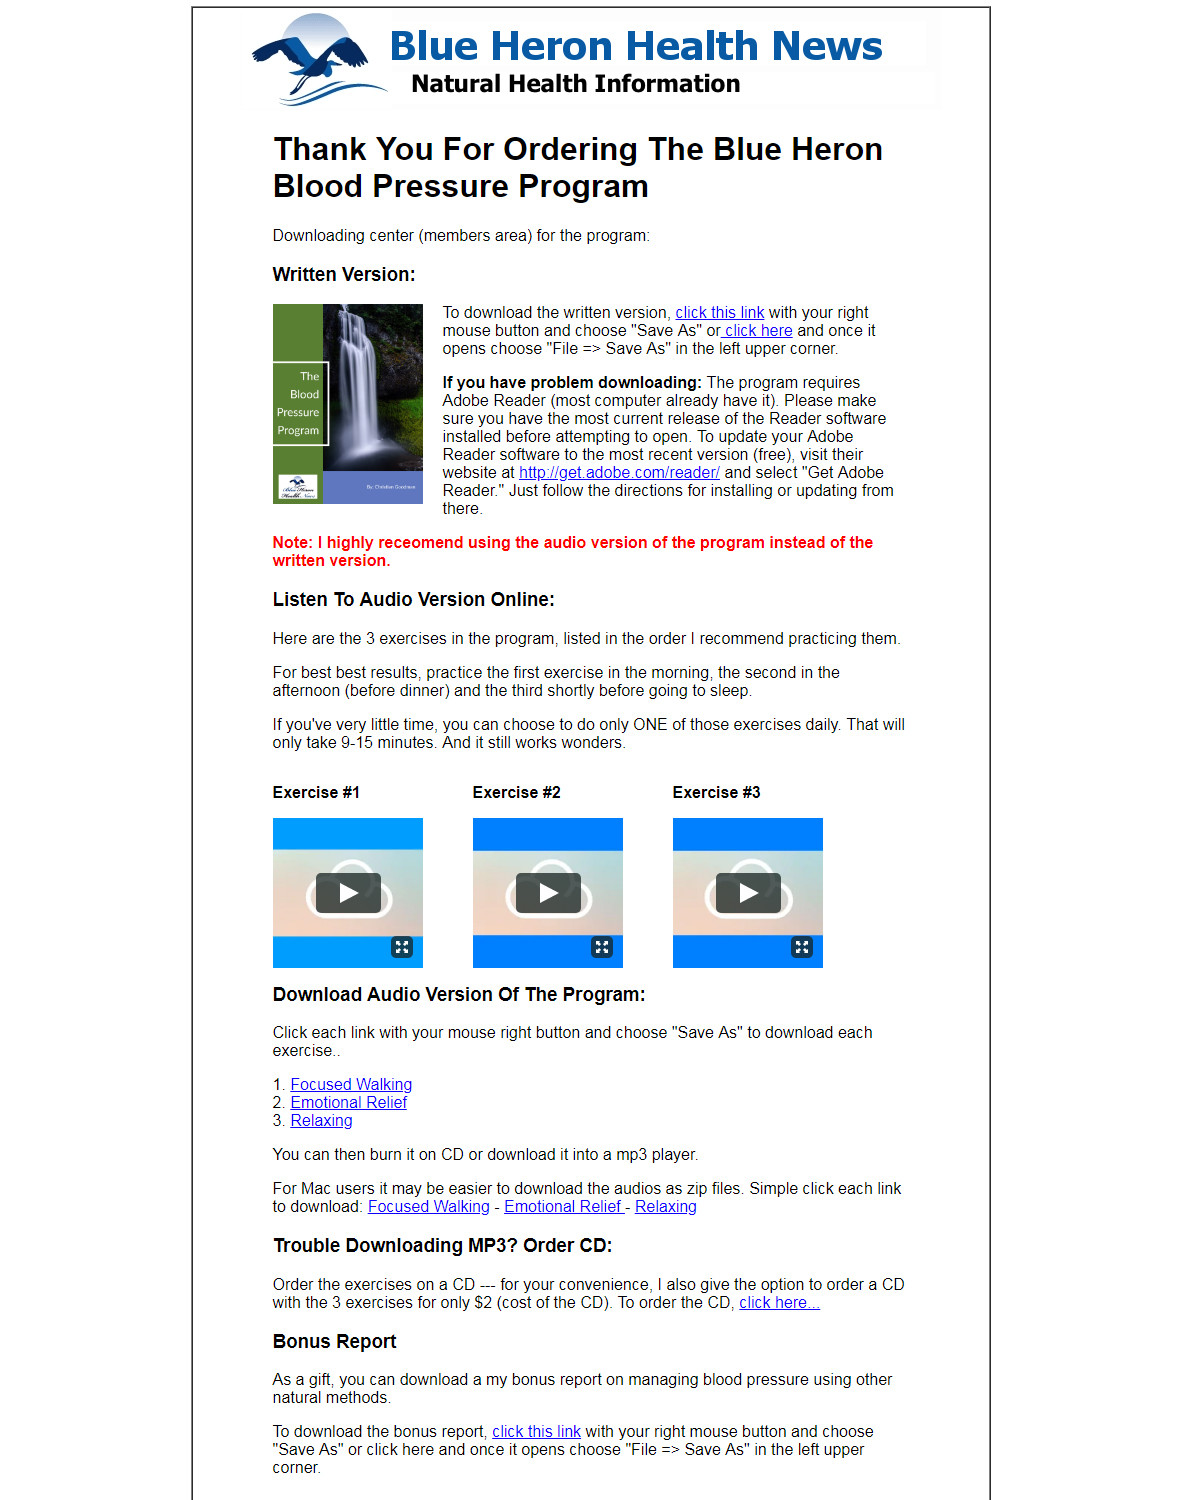 The Blood Pressure Program Download Page